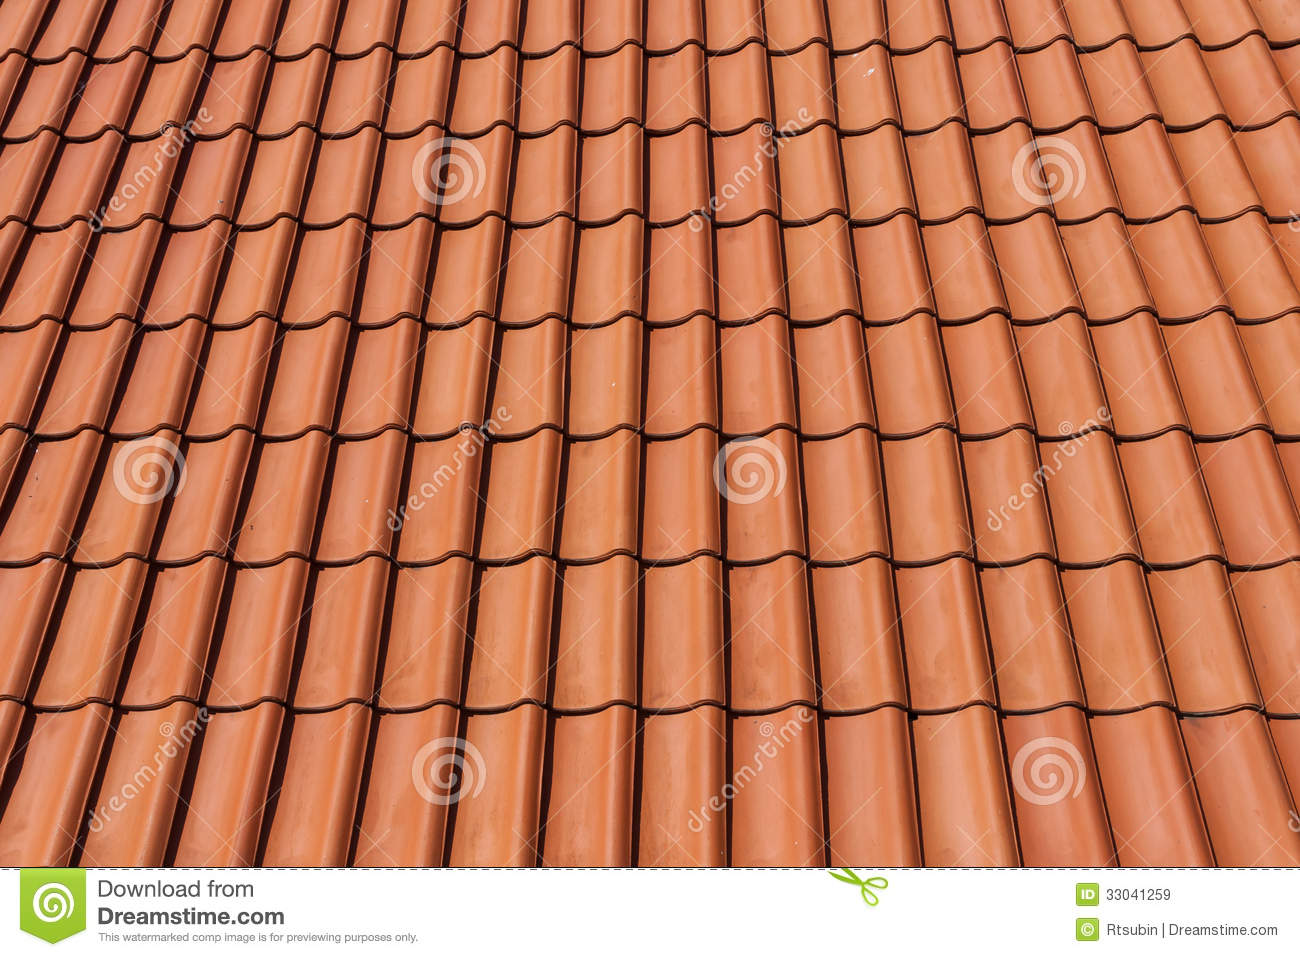 Roof tile pattern royalty free stock photography for Roof tile patterns